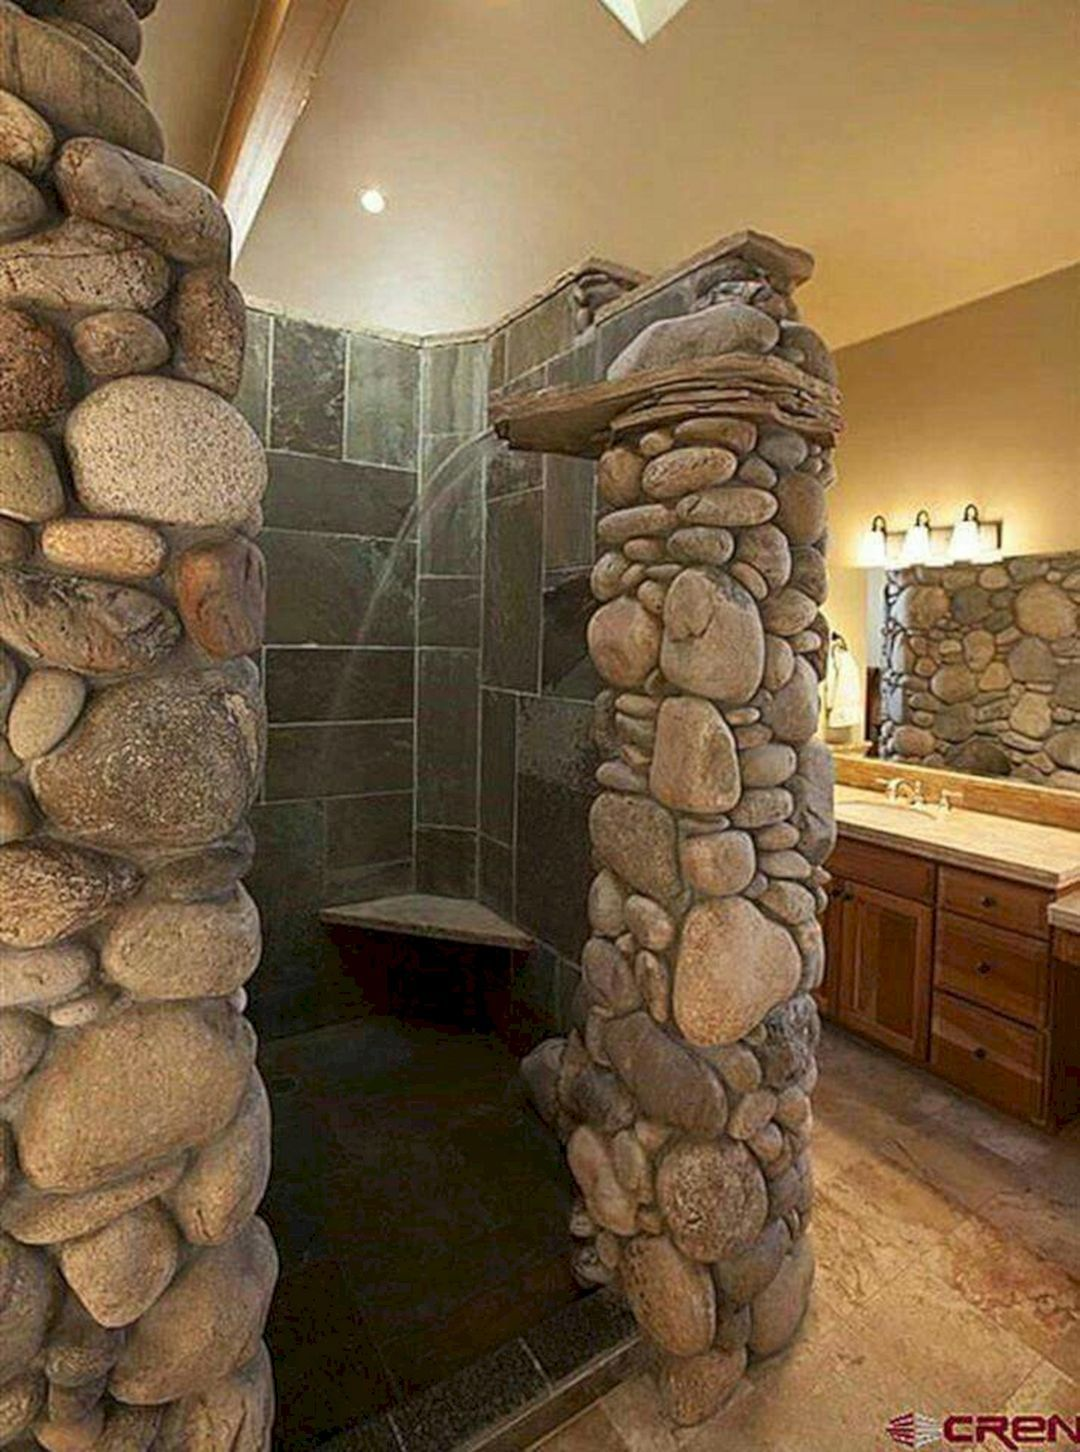 Superbe Inspiring 45+ Amazing Rock Wall Bathroom You Need To Impersonate  Https://decoredo.com/13316 45 Amazing Rock Wall Bathroom  You Need To Impersonate/